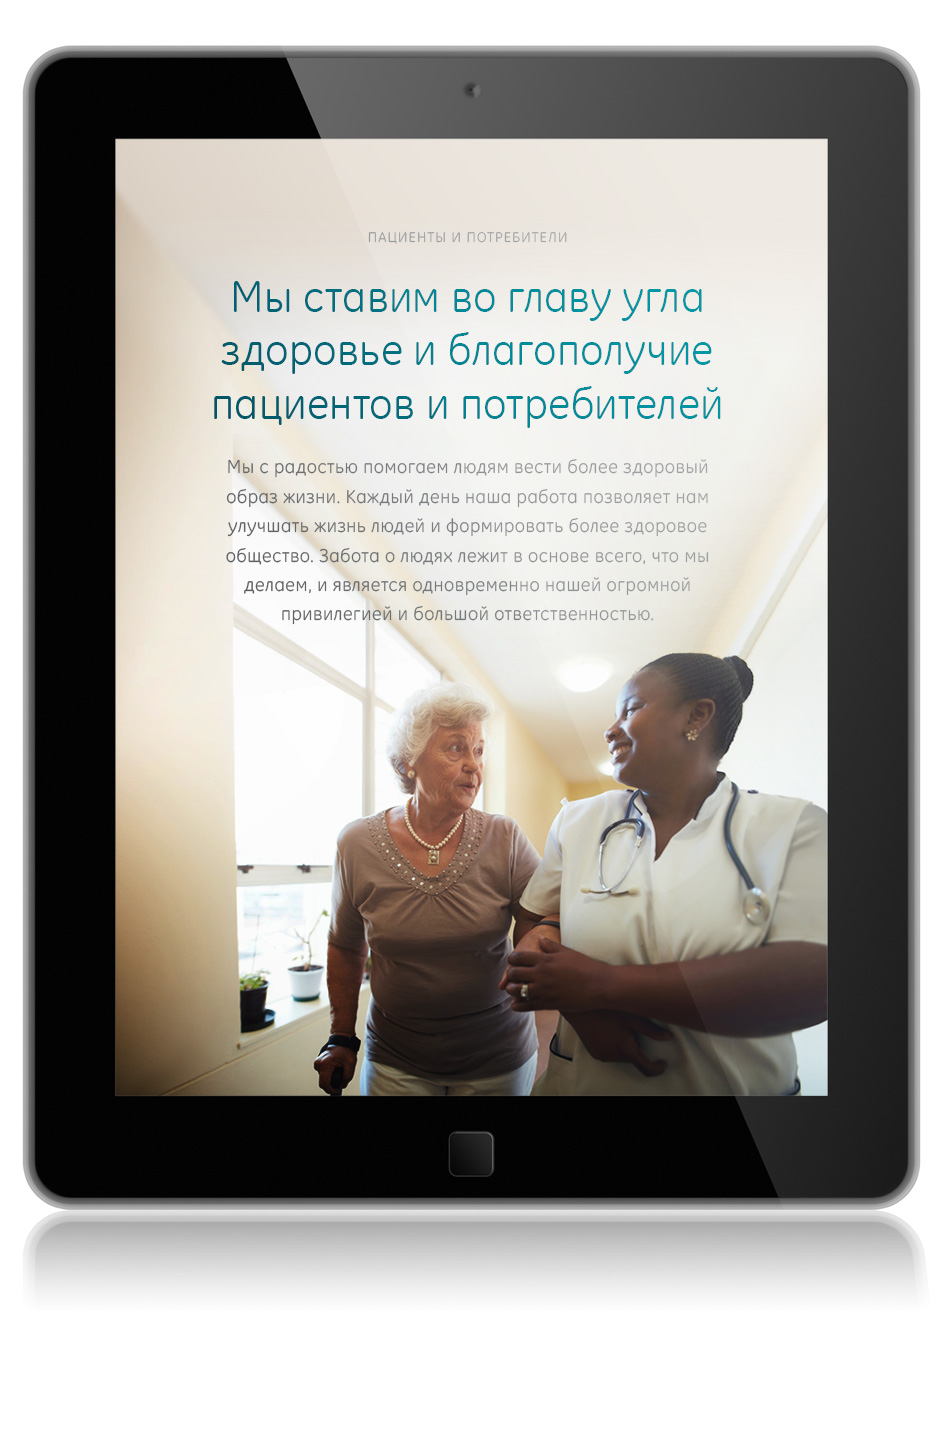 OurWork_Train75k_iPad_Russian.jpg